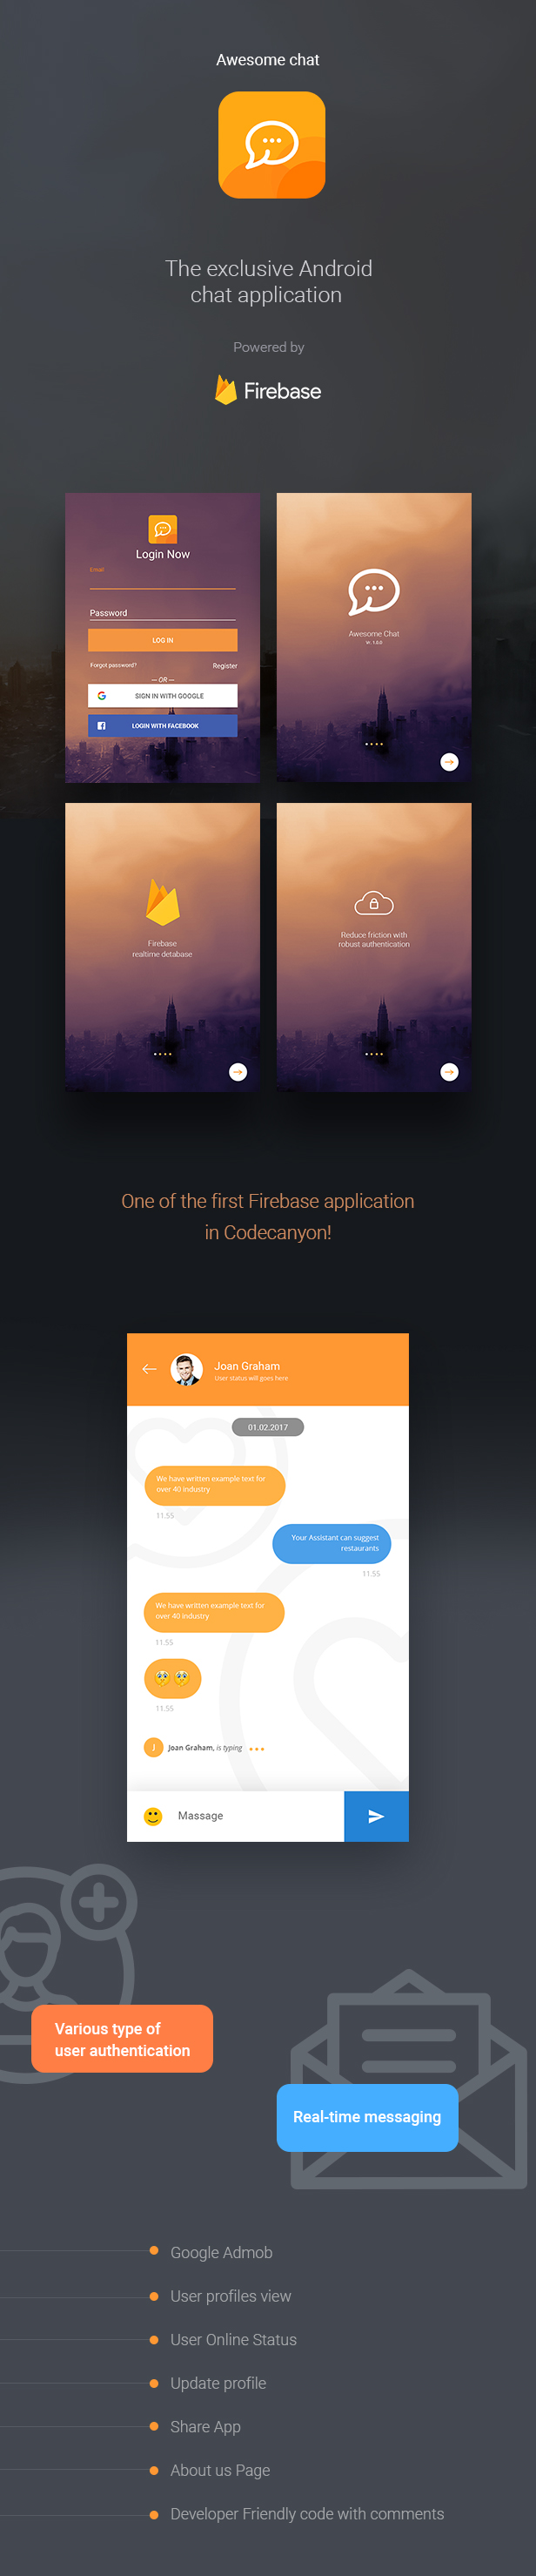 Awesome Chat - Android Firebase Real-time Mobile Application - 3